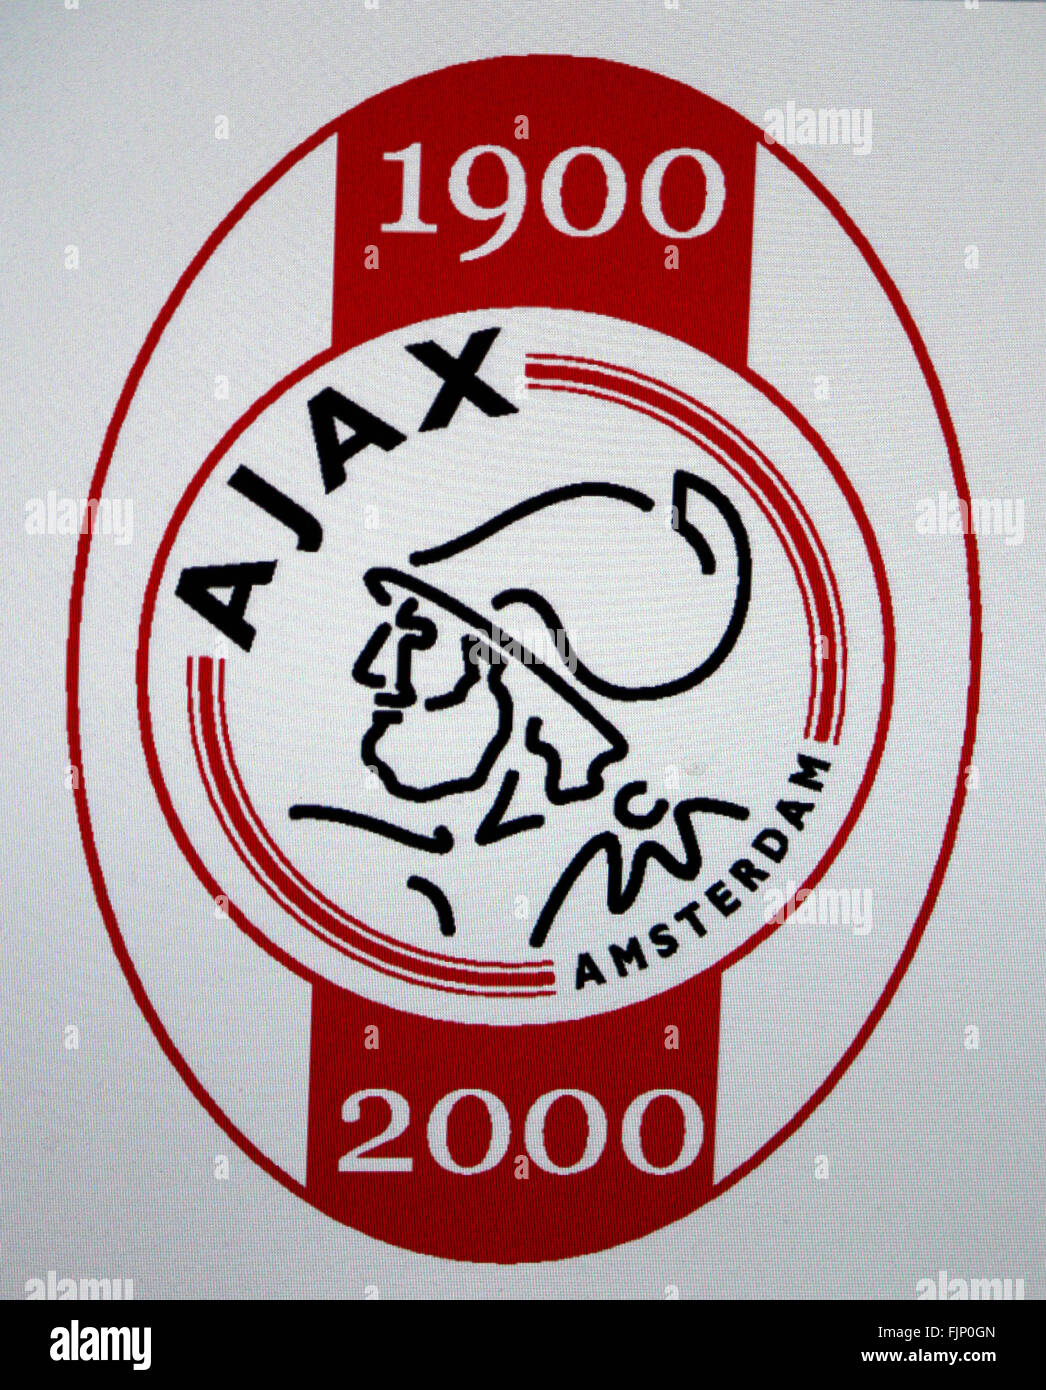 ajax logo wallpaper ajax voetbal